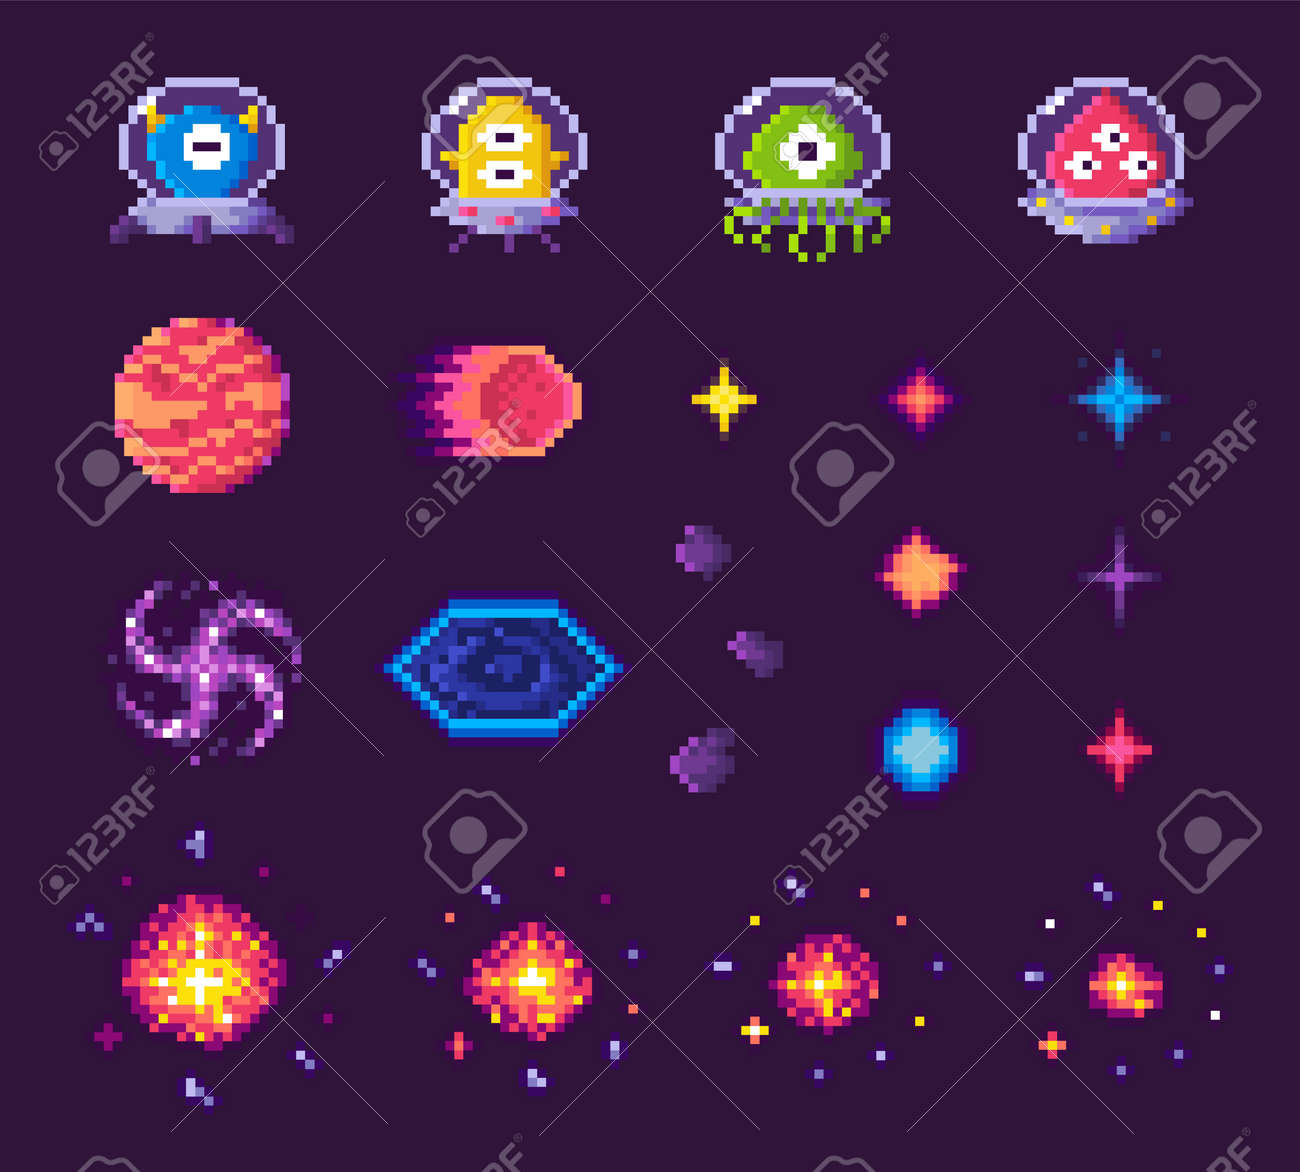 Pixel art game icons vector, 8 bit graphics of retro gaming,